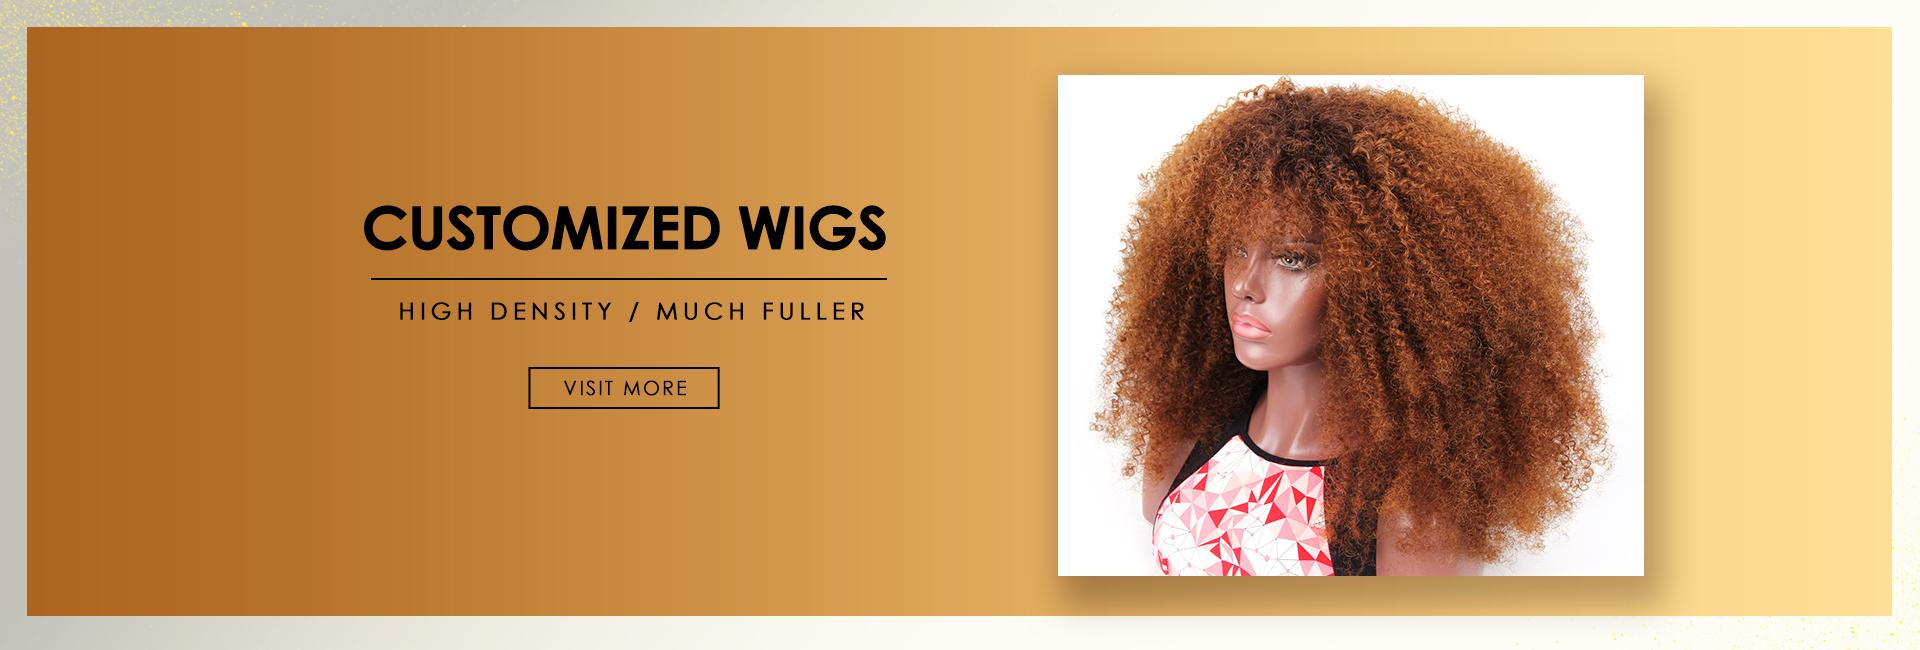 Customized Wigs